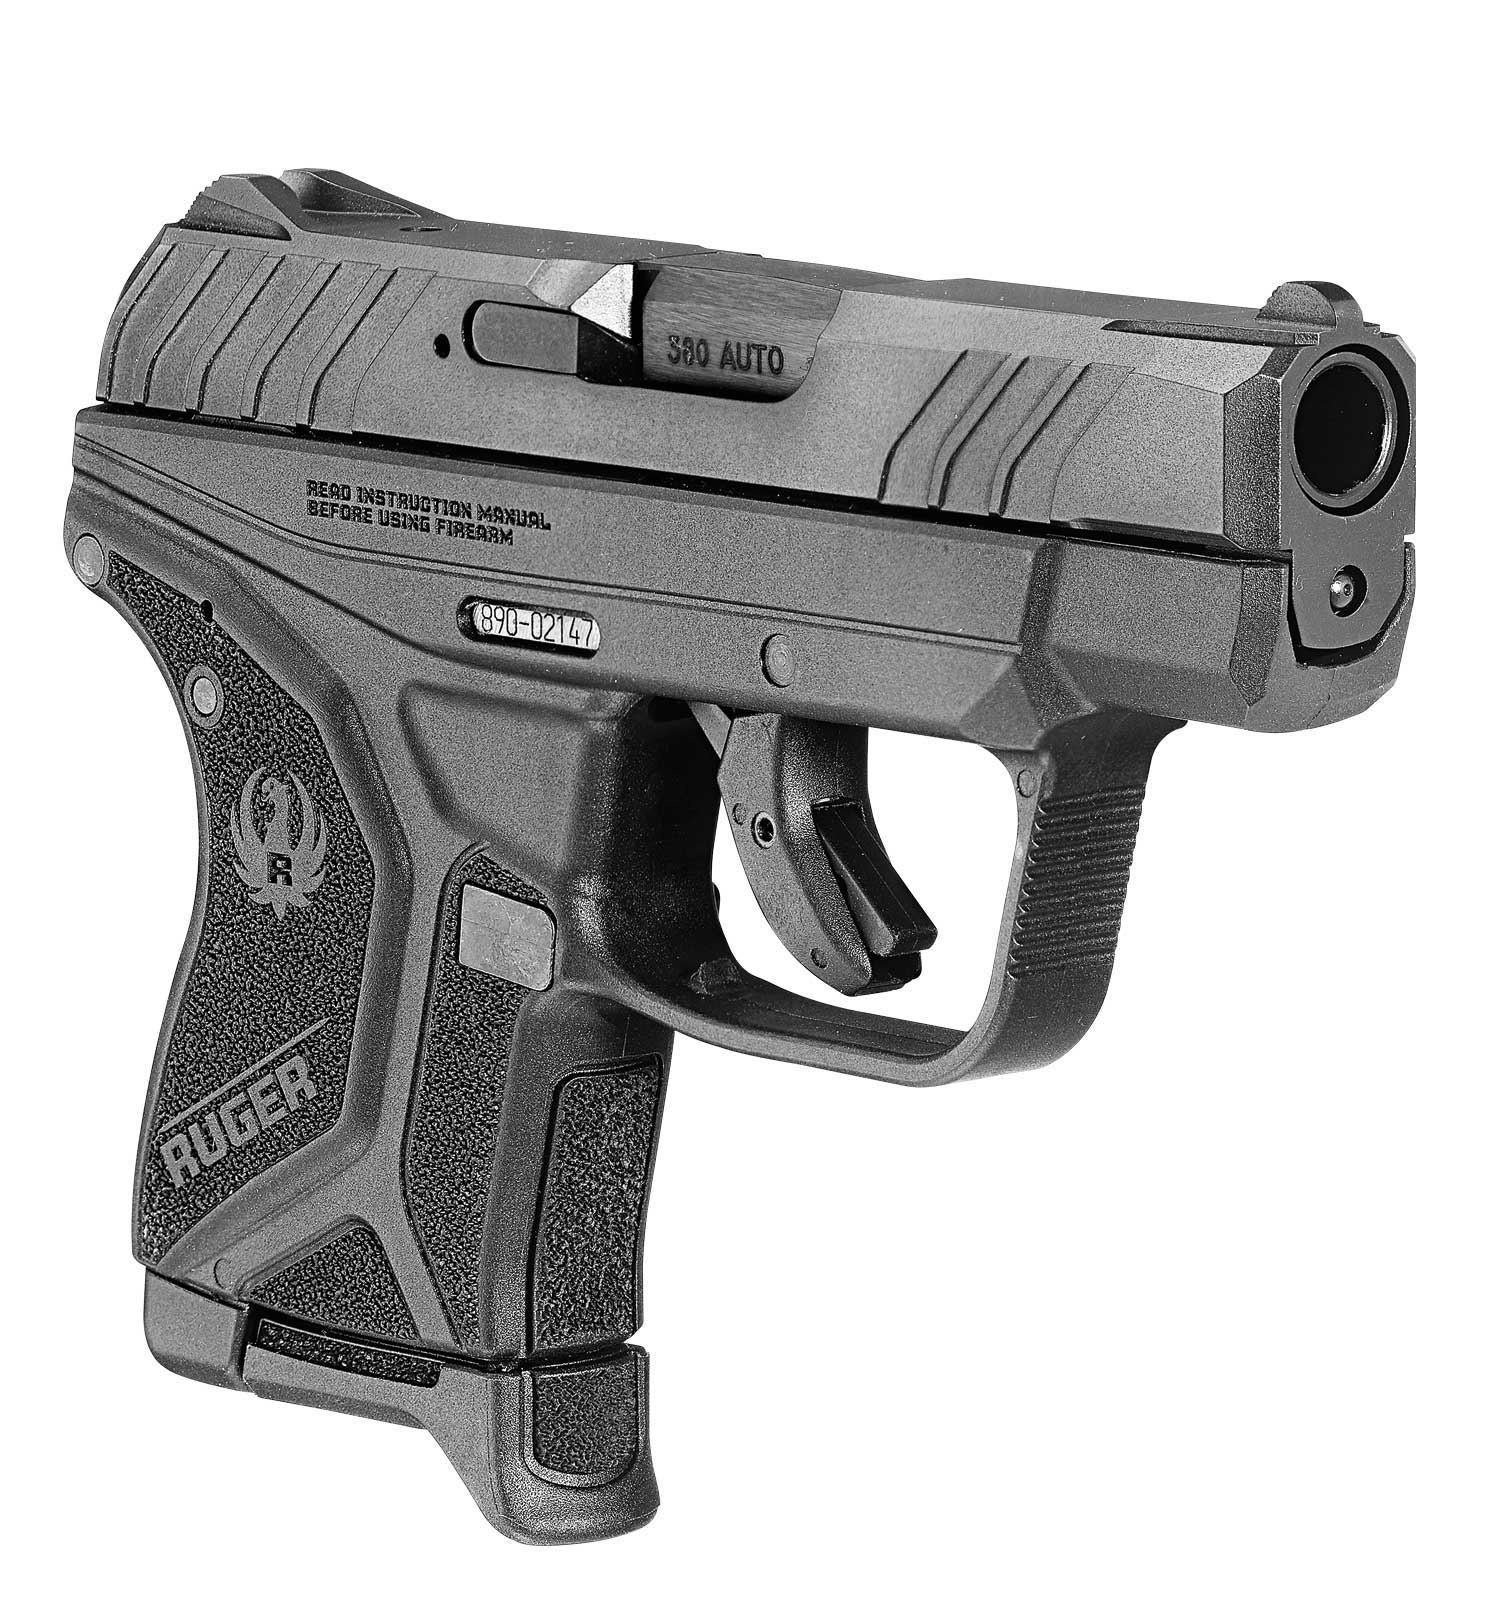 Ruger's LCP II